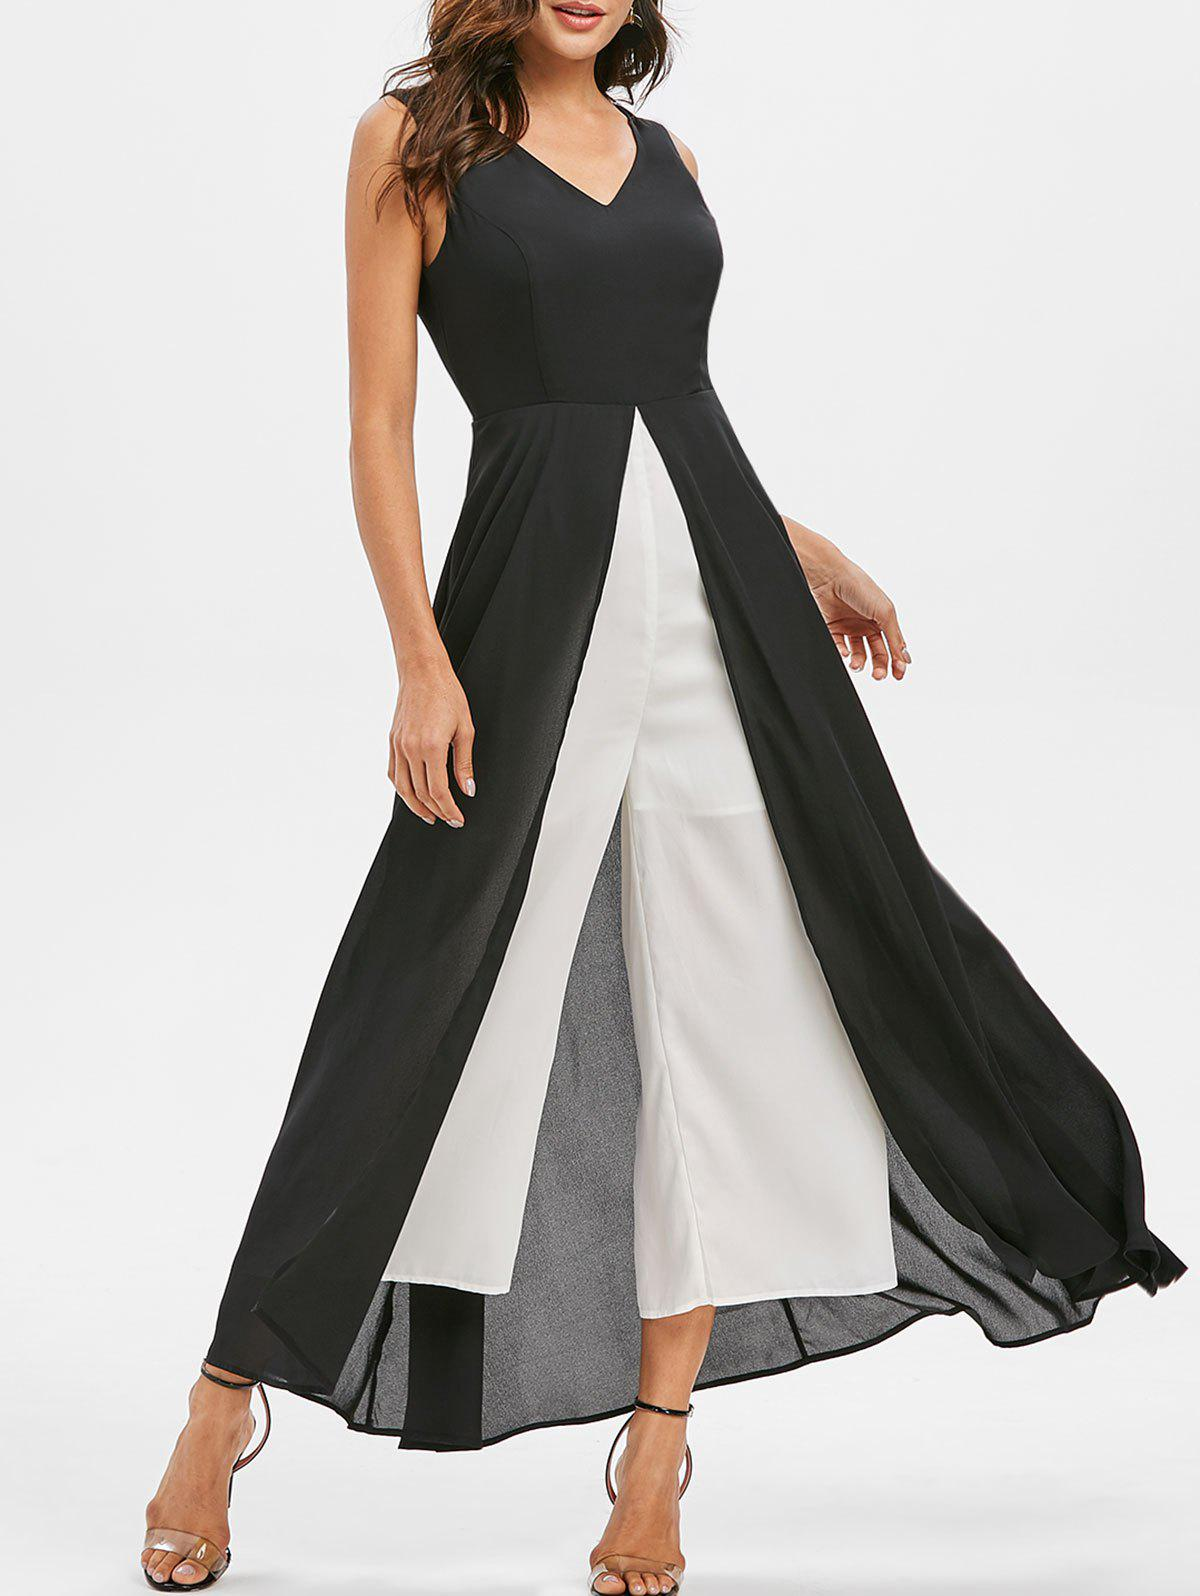 Chic Contrast Color Overlay Wide Leg Jumpsuit